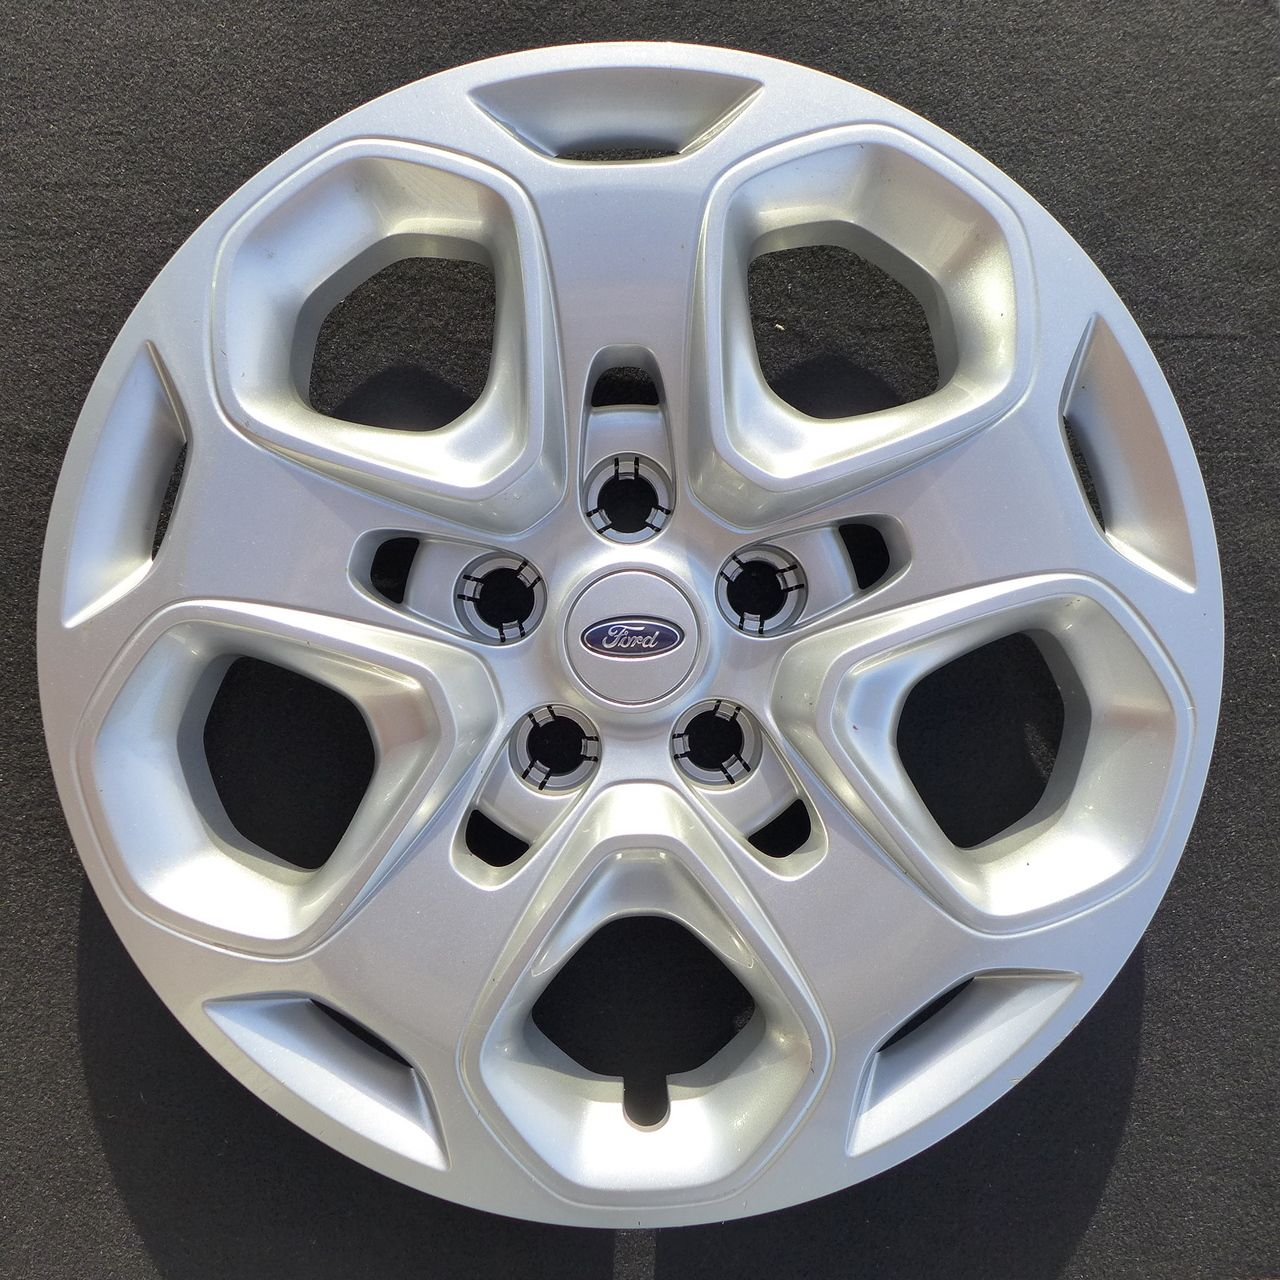 fusion ford wheel hubcap cap wheels inch oem chrome factory silver scratched covers hubcaps db